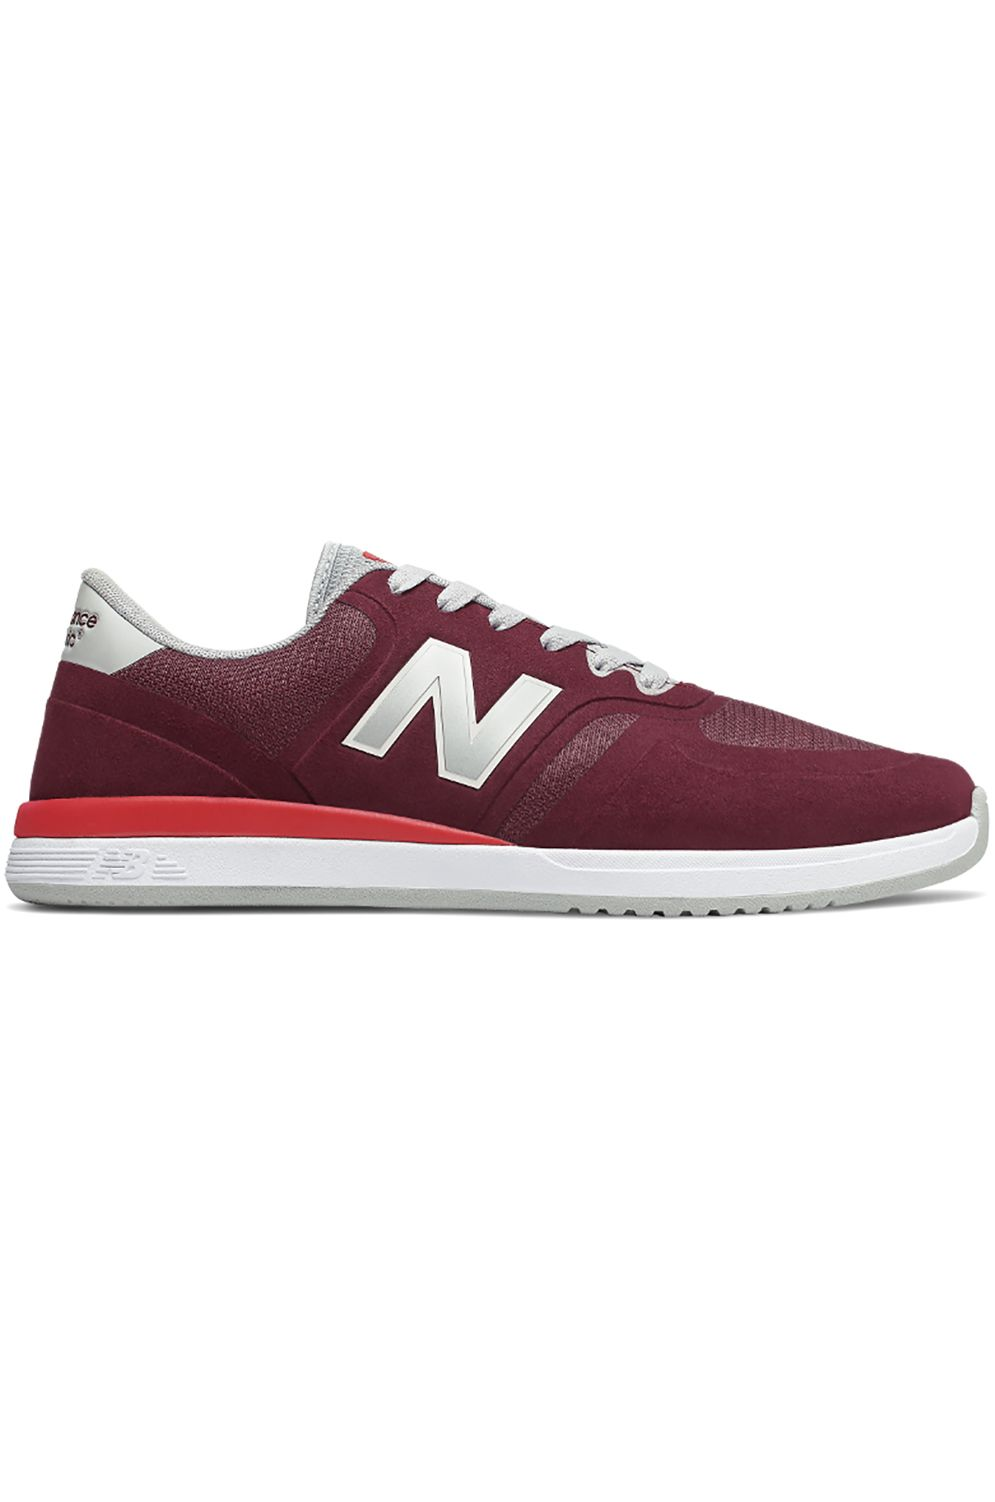 Tenis New Balance NM420 Burgundy